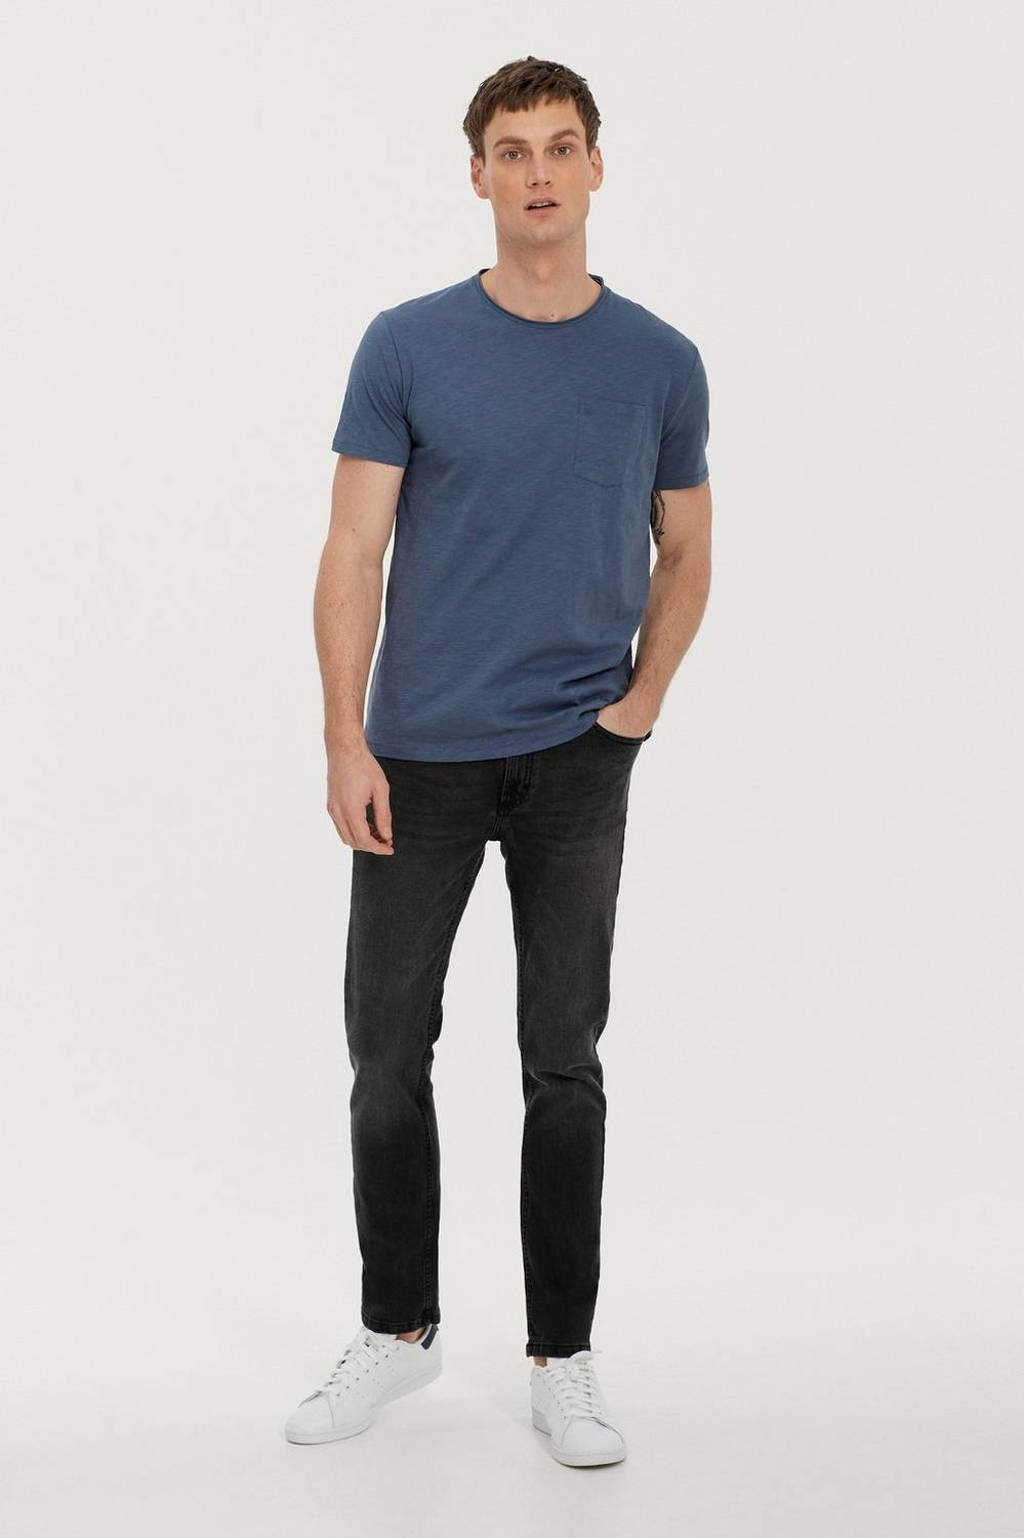 Ellos ON OUR TERMS T-shirt blauw, Oliver Blue